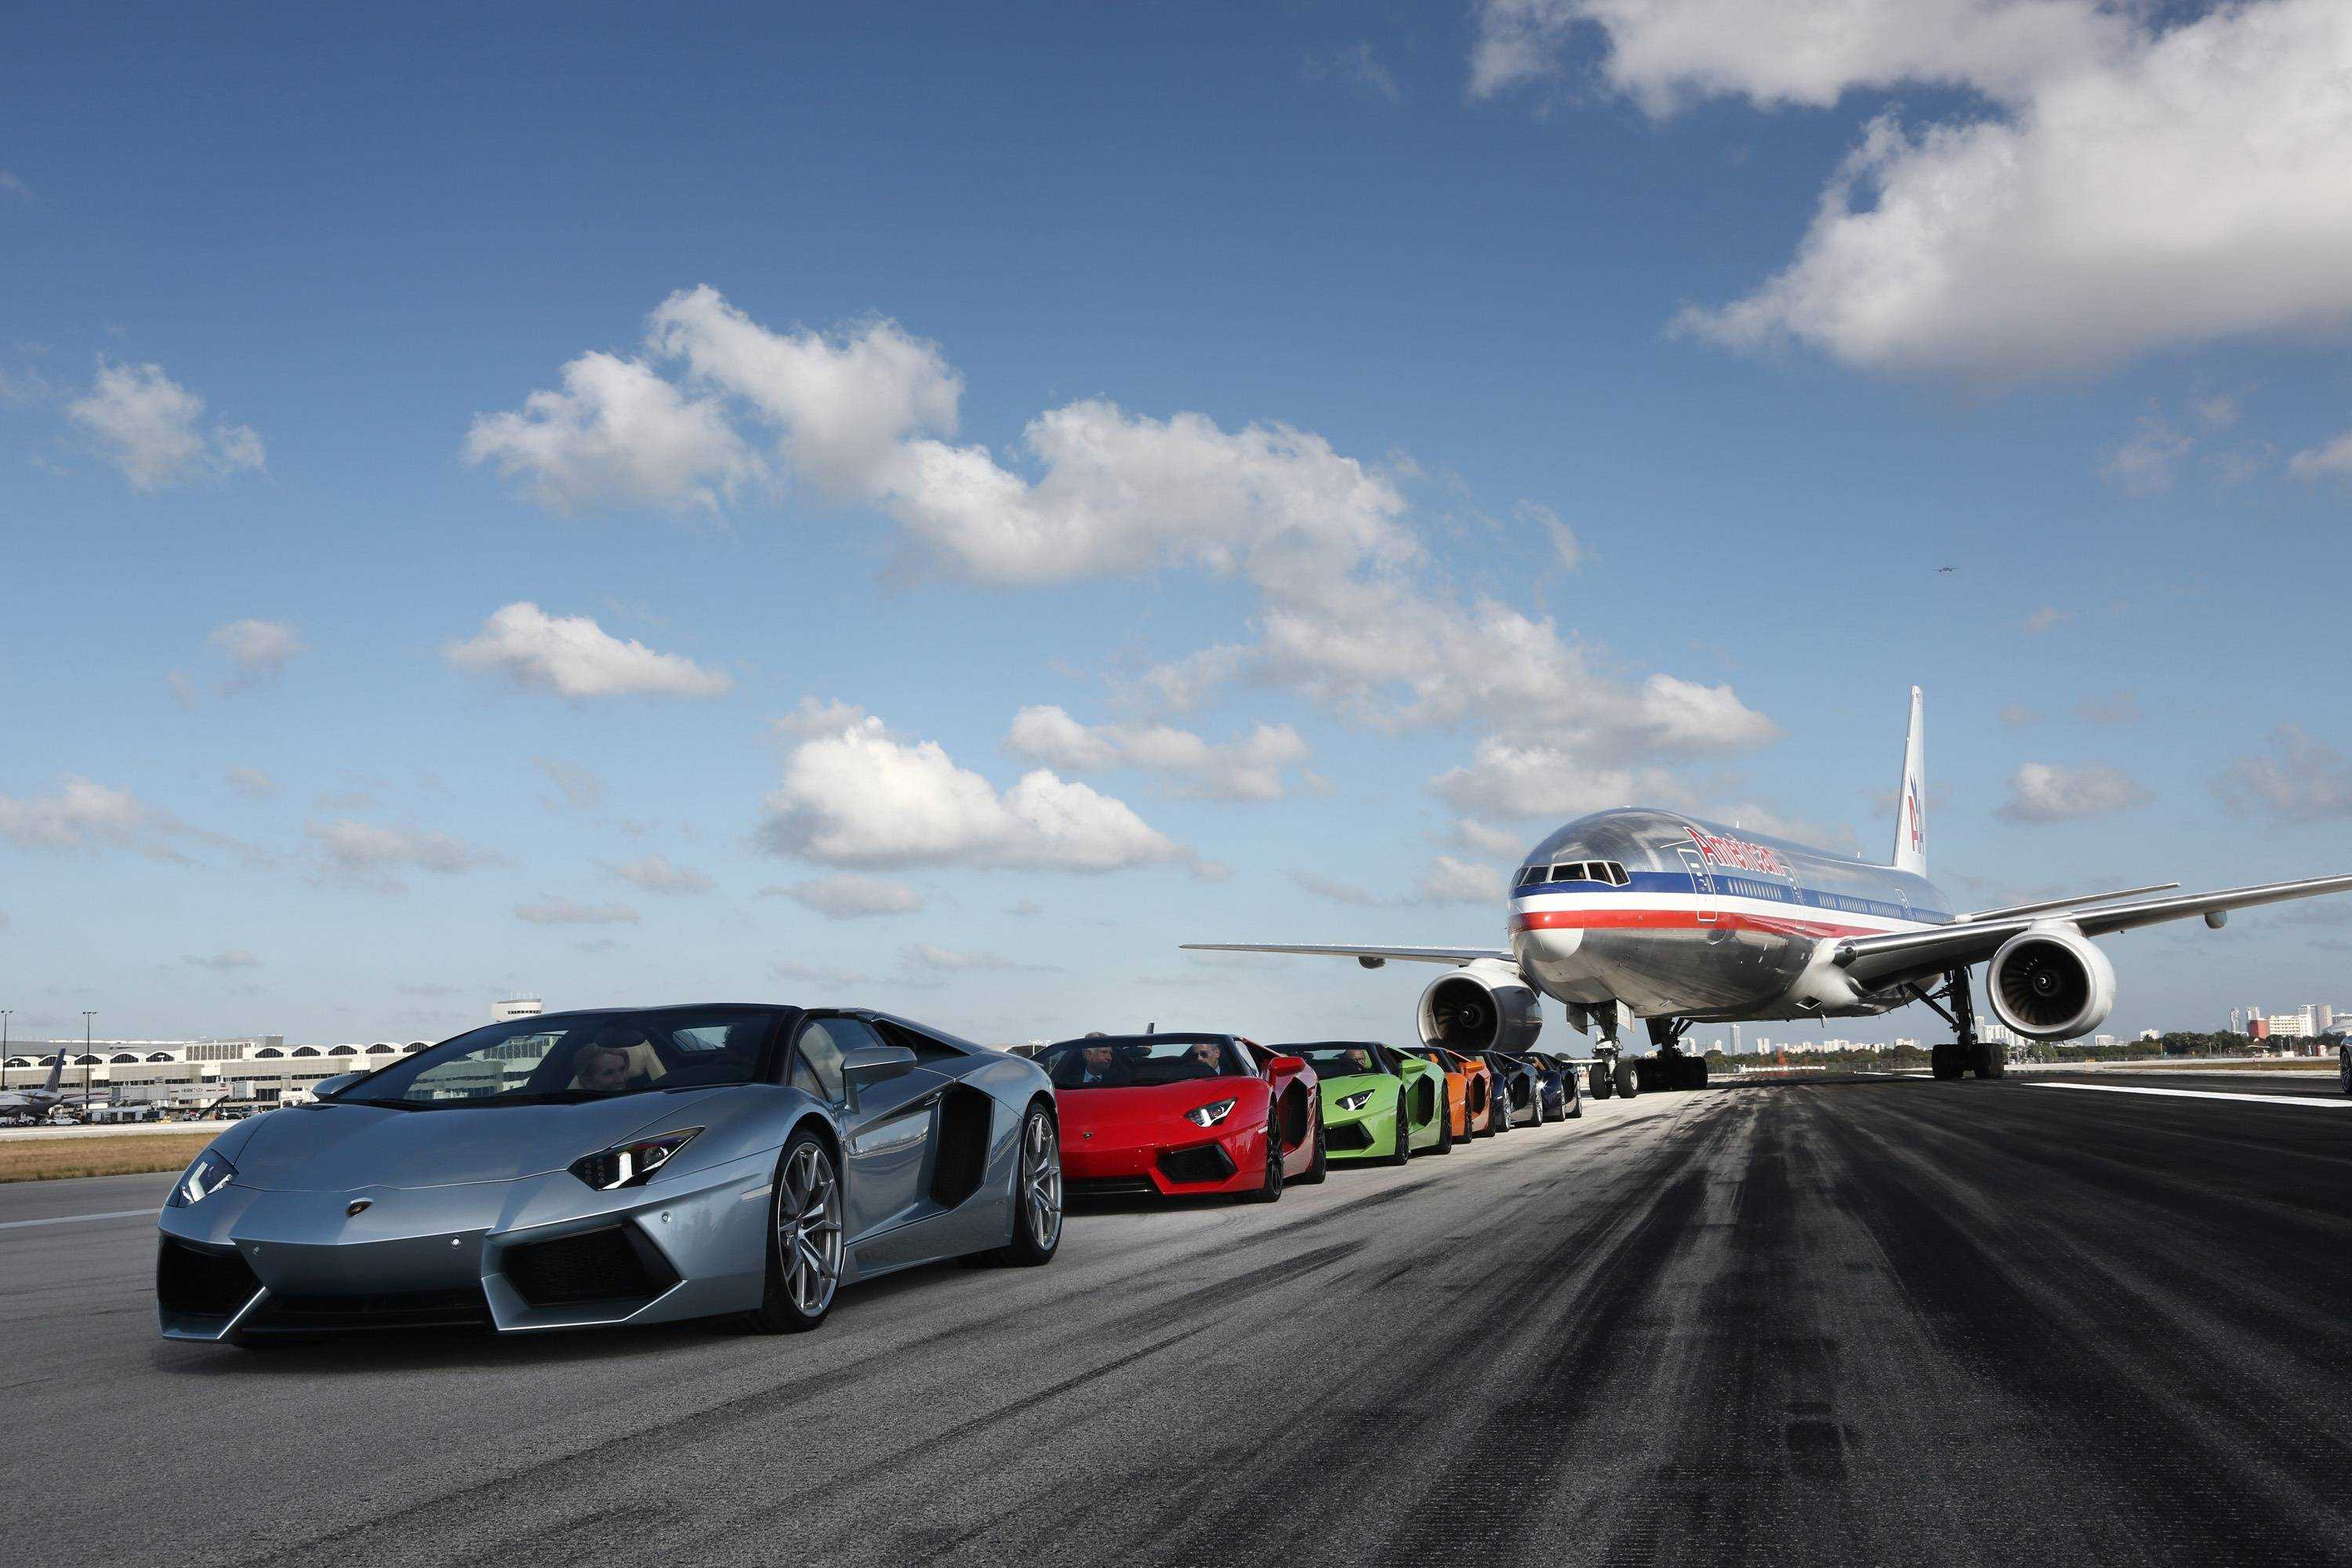 Aventador Roadsters on MIA's runway